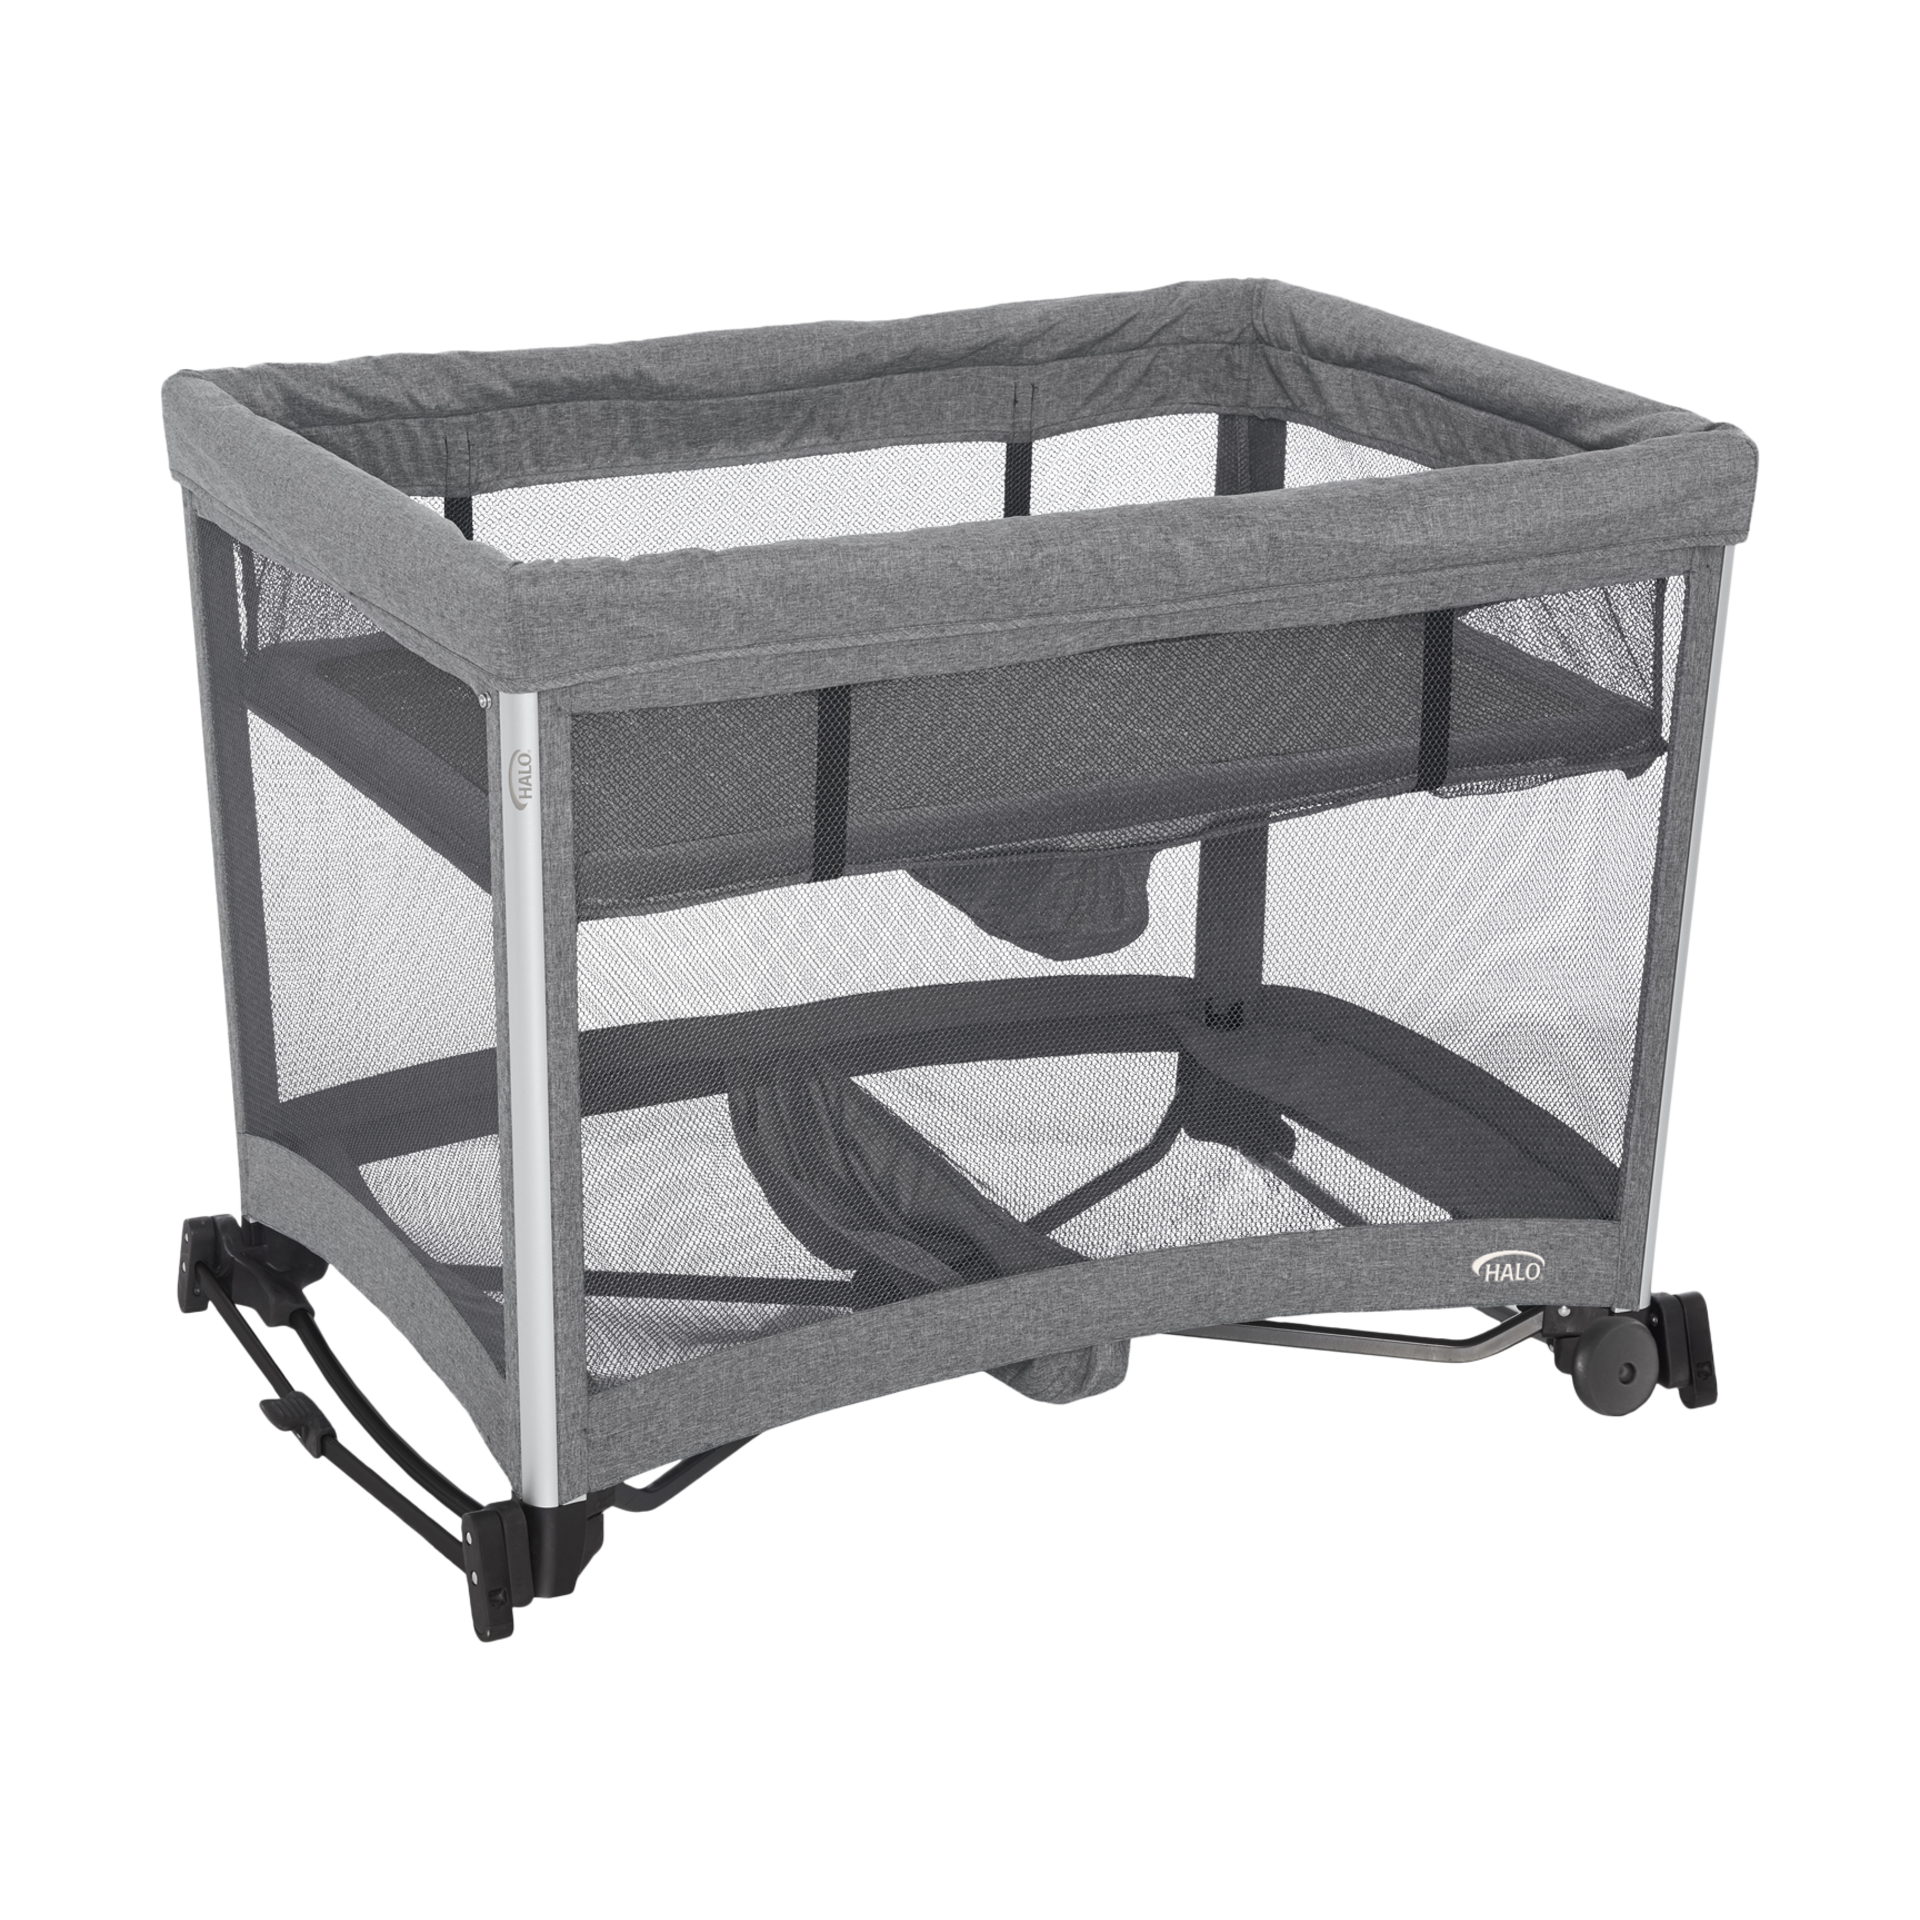 Latest Baby Changing Table Folding Diapers Station Safe Nursing Aid W// Baseplate